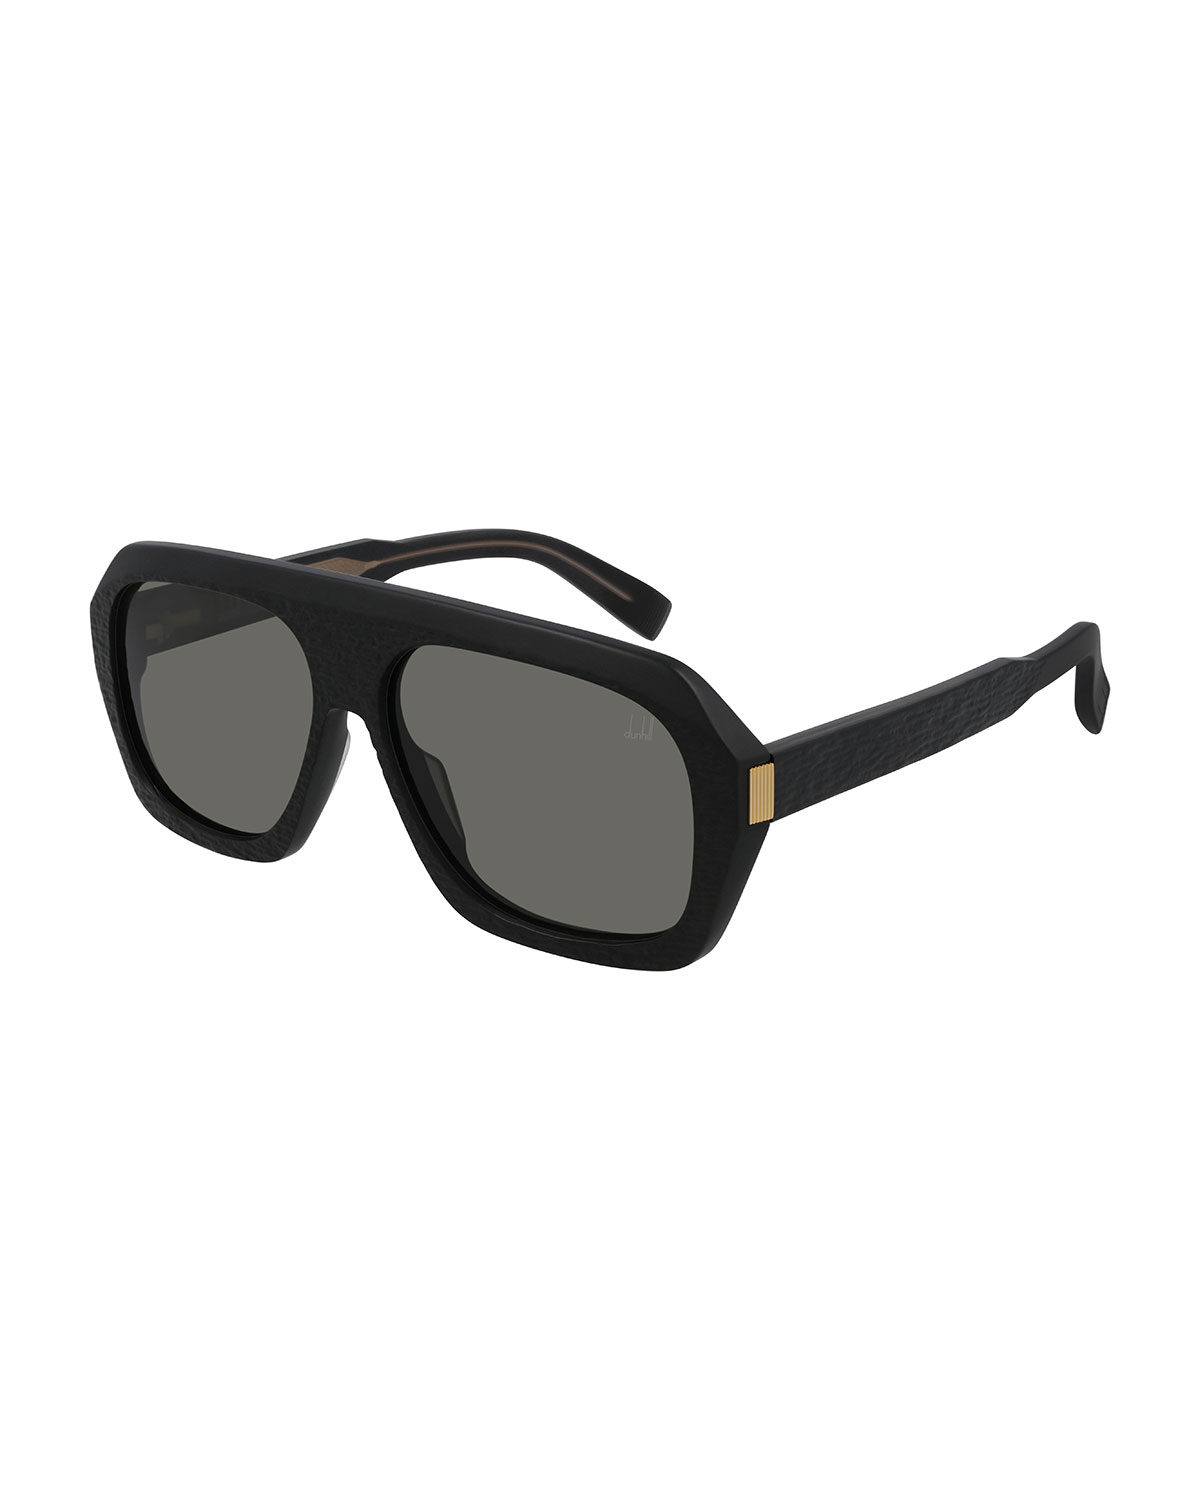 Dunhill MEN'S THICK RECTANGLE ACETATE SUNGLASSES